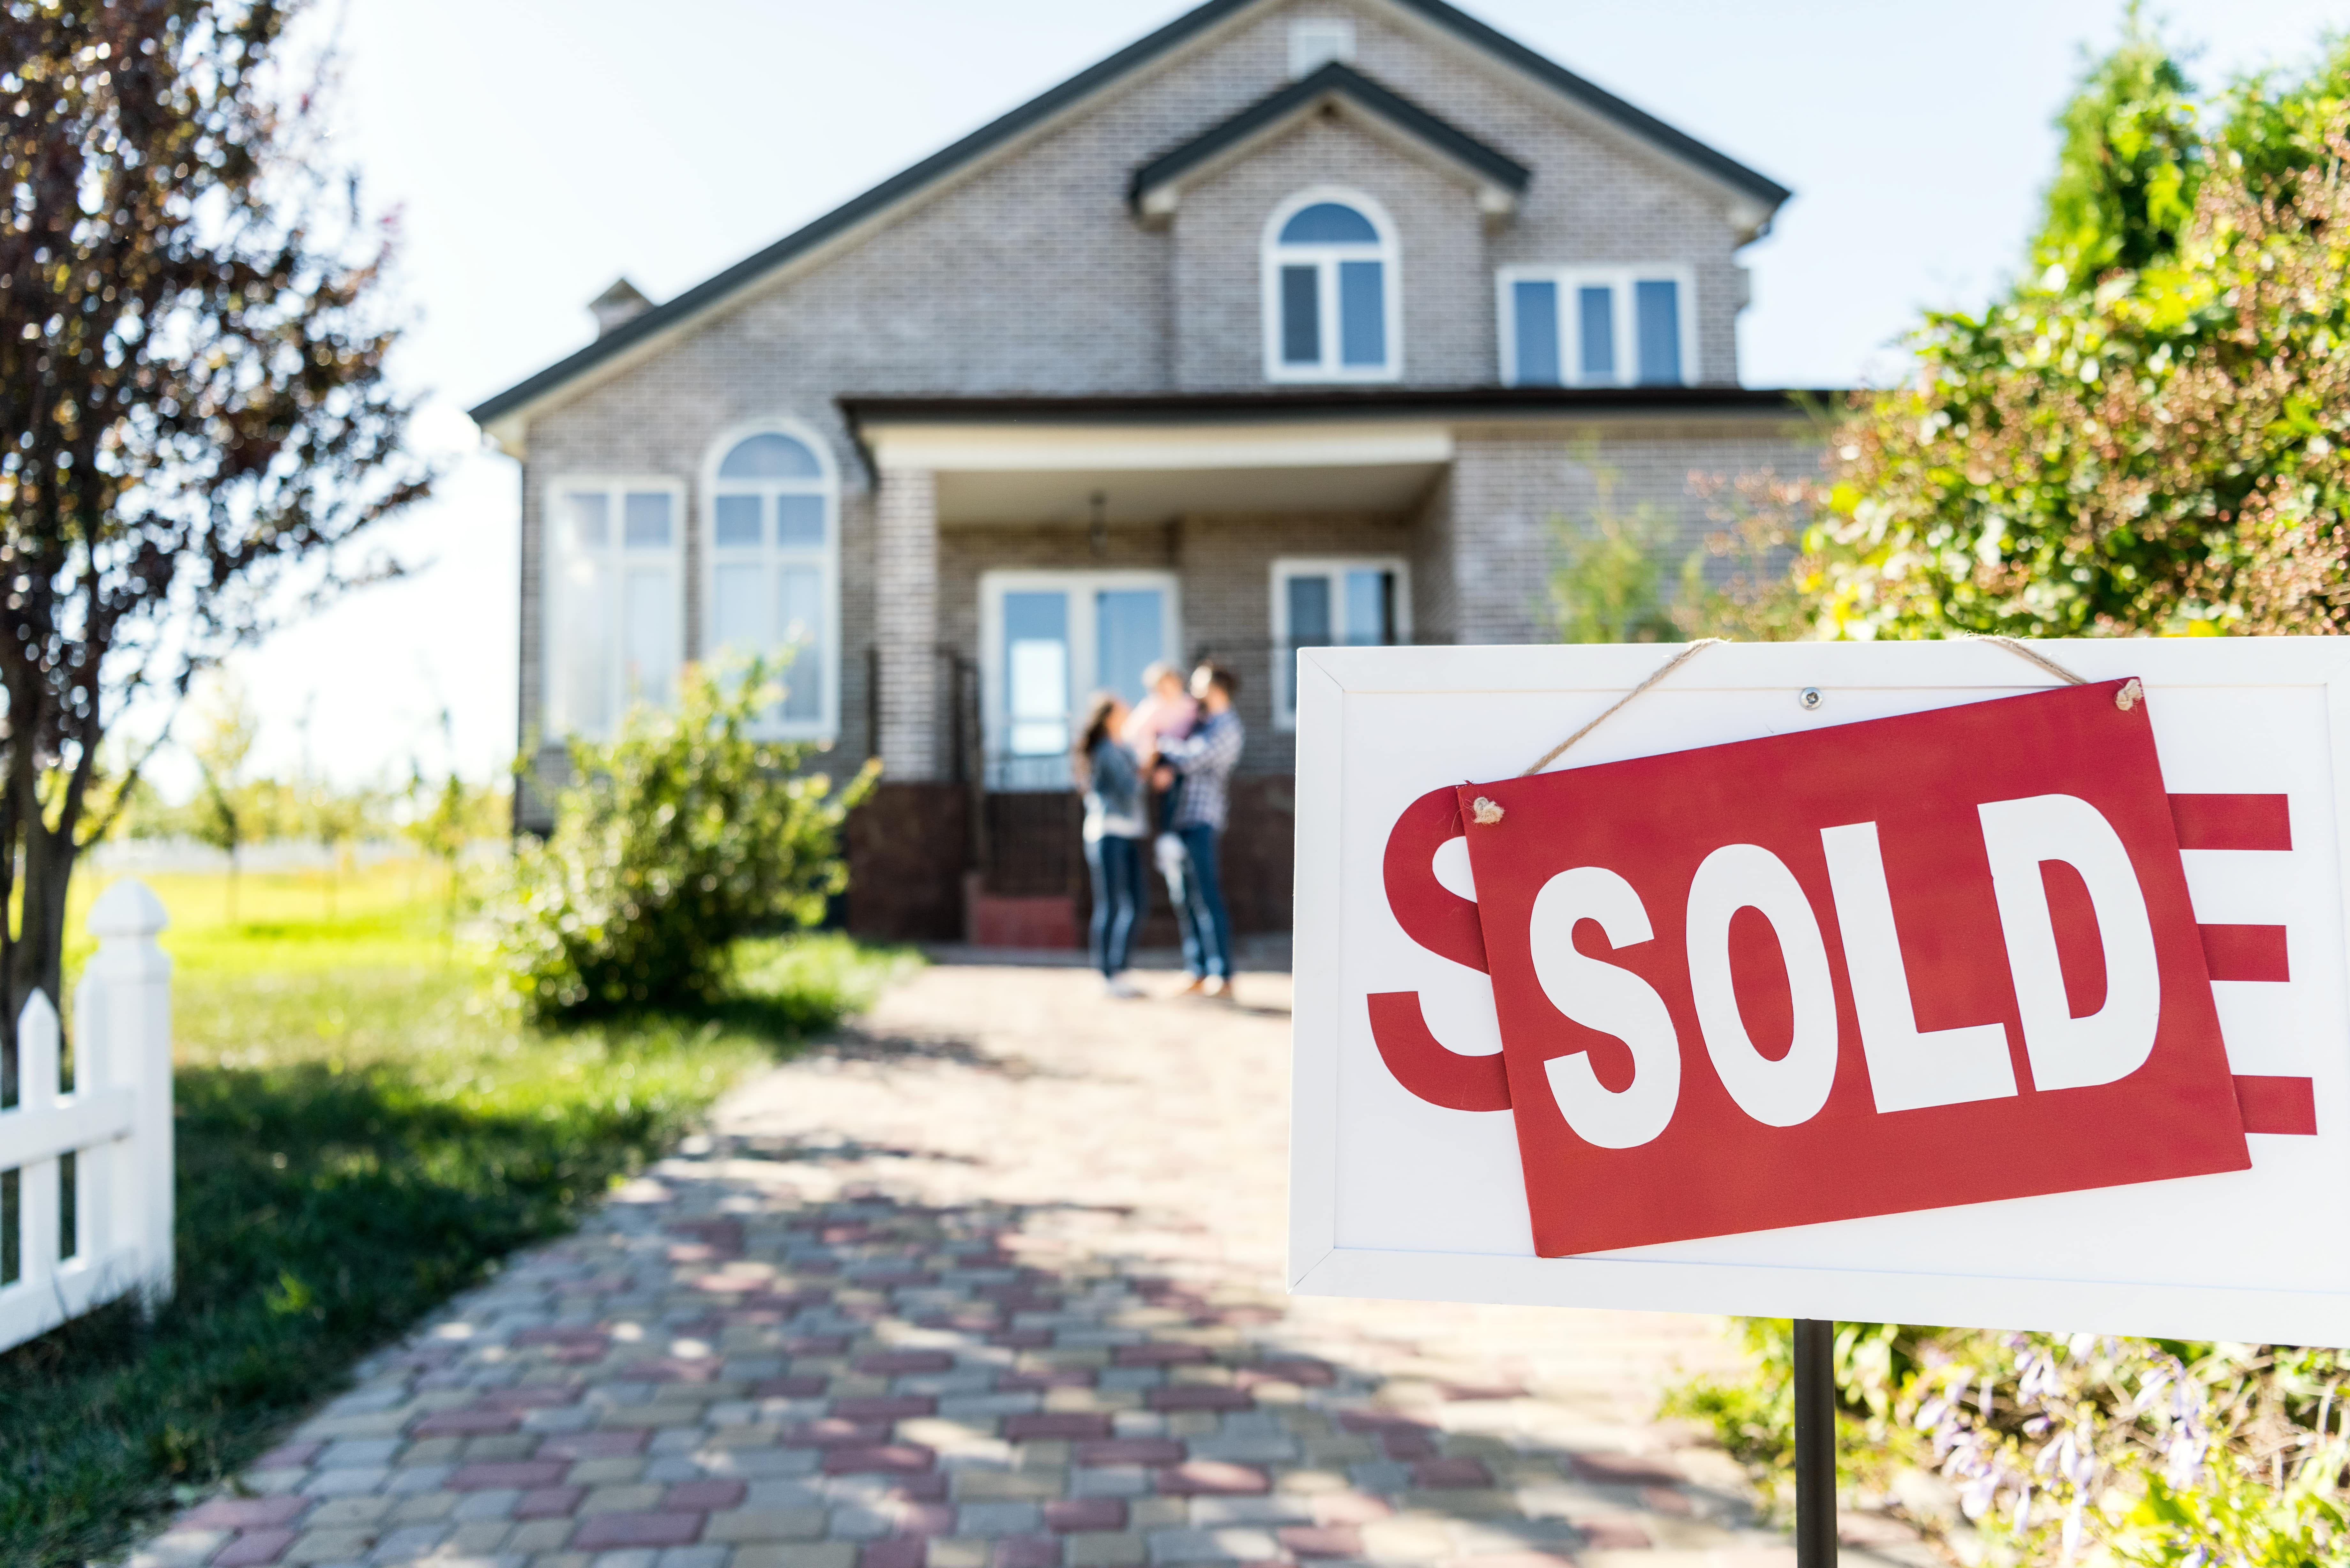 Sold, Home Buying, House, First-Time Home Buyers